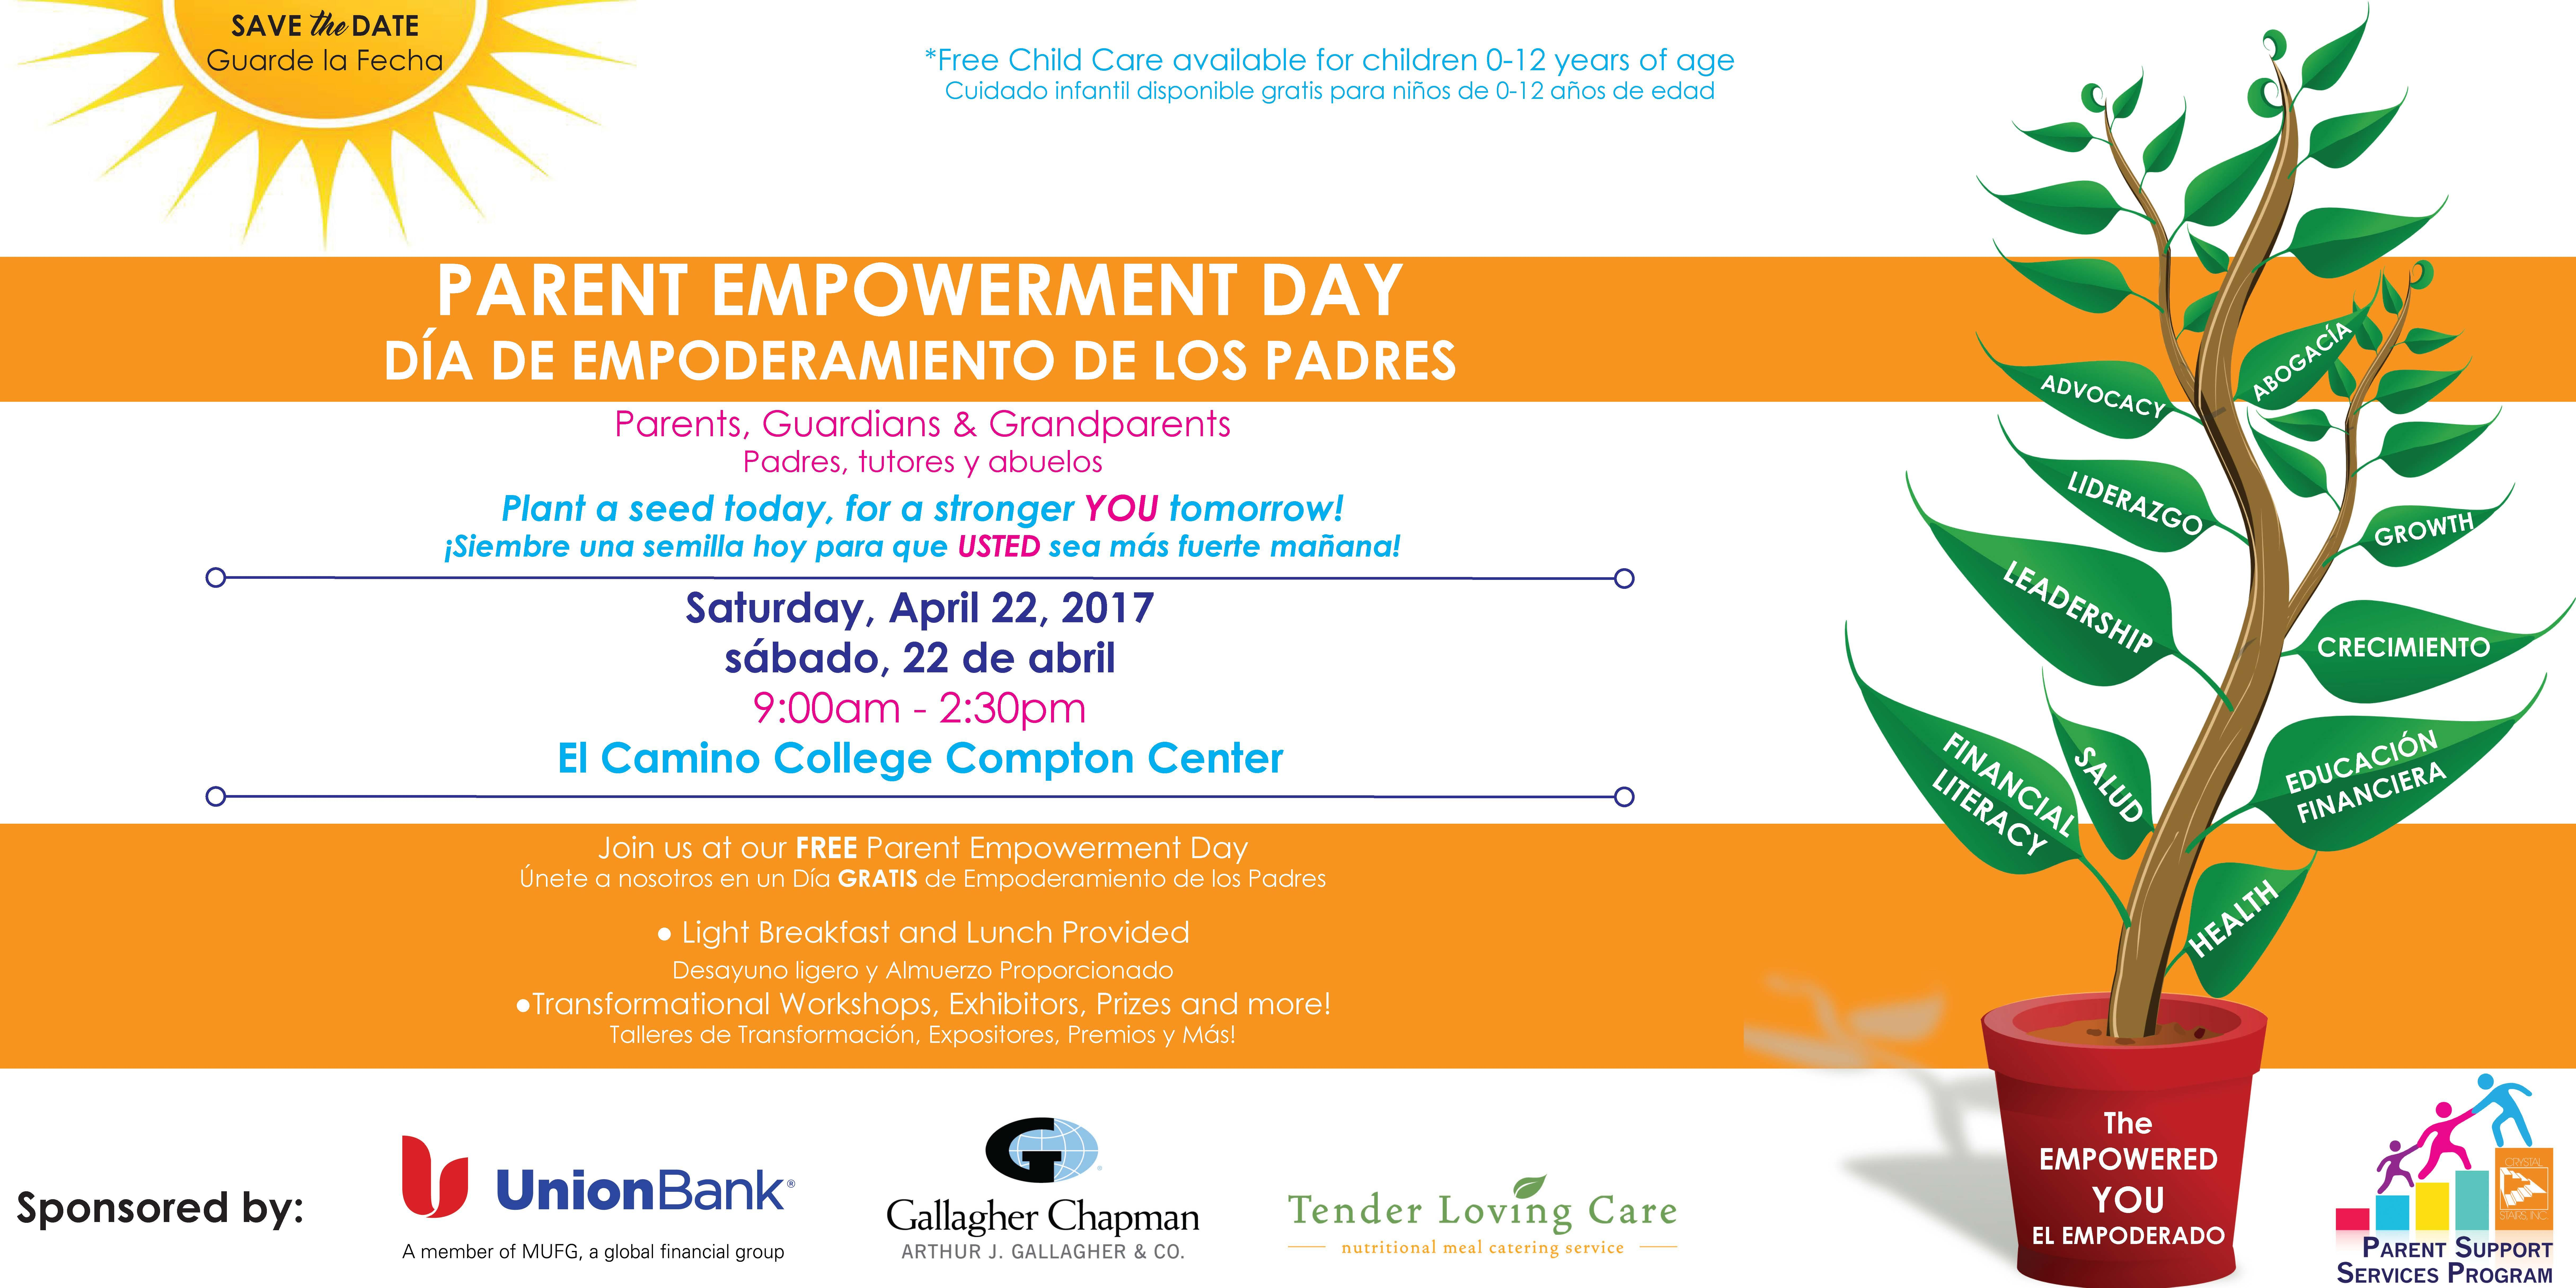 cup of hope tea lcc women s ministry lakewood 22 apr 2017 crystal stairs inc parent empowerment day